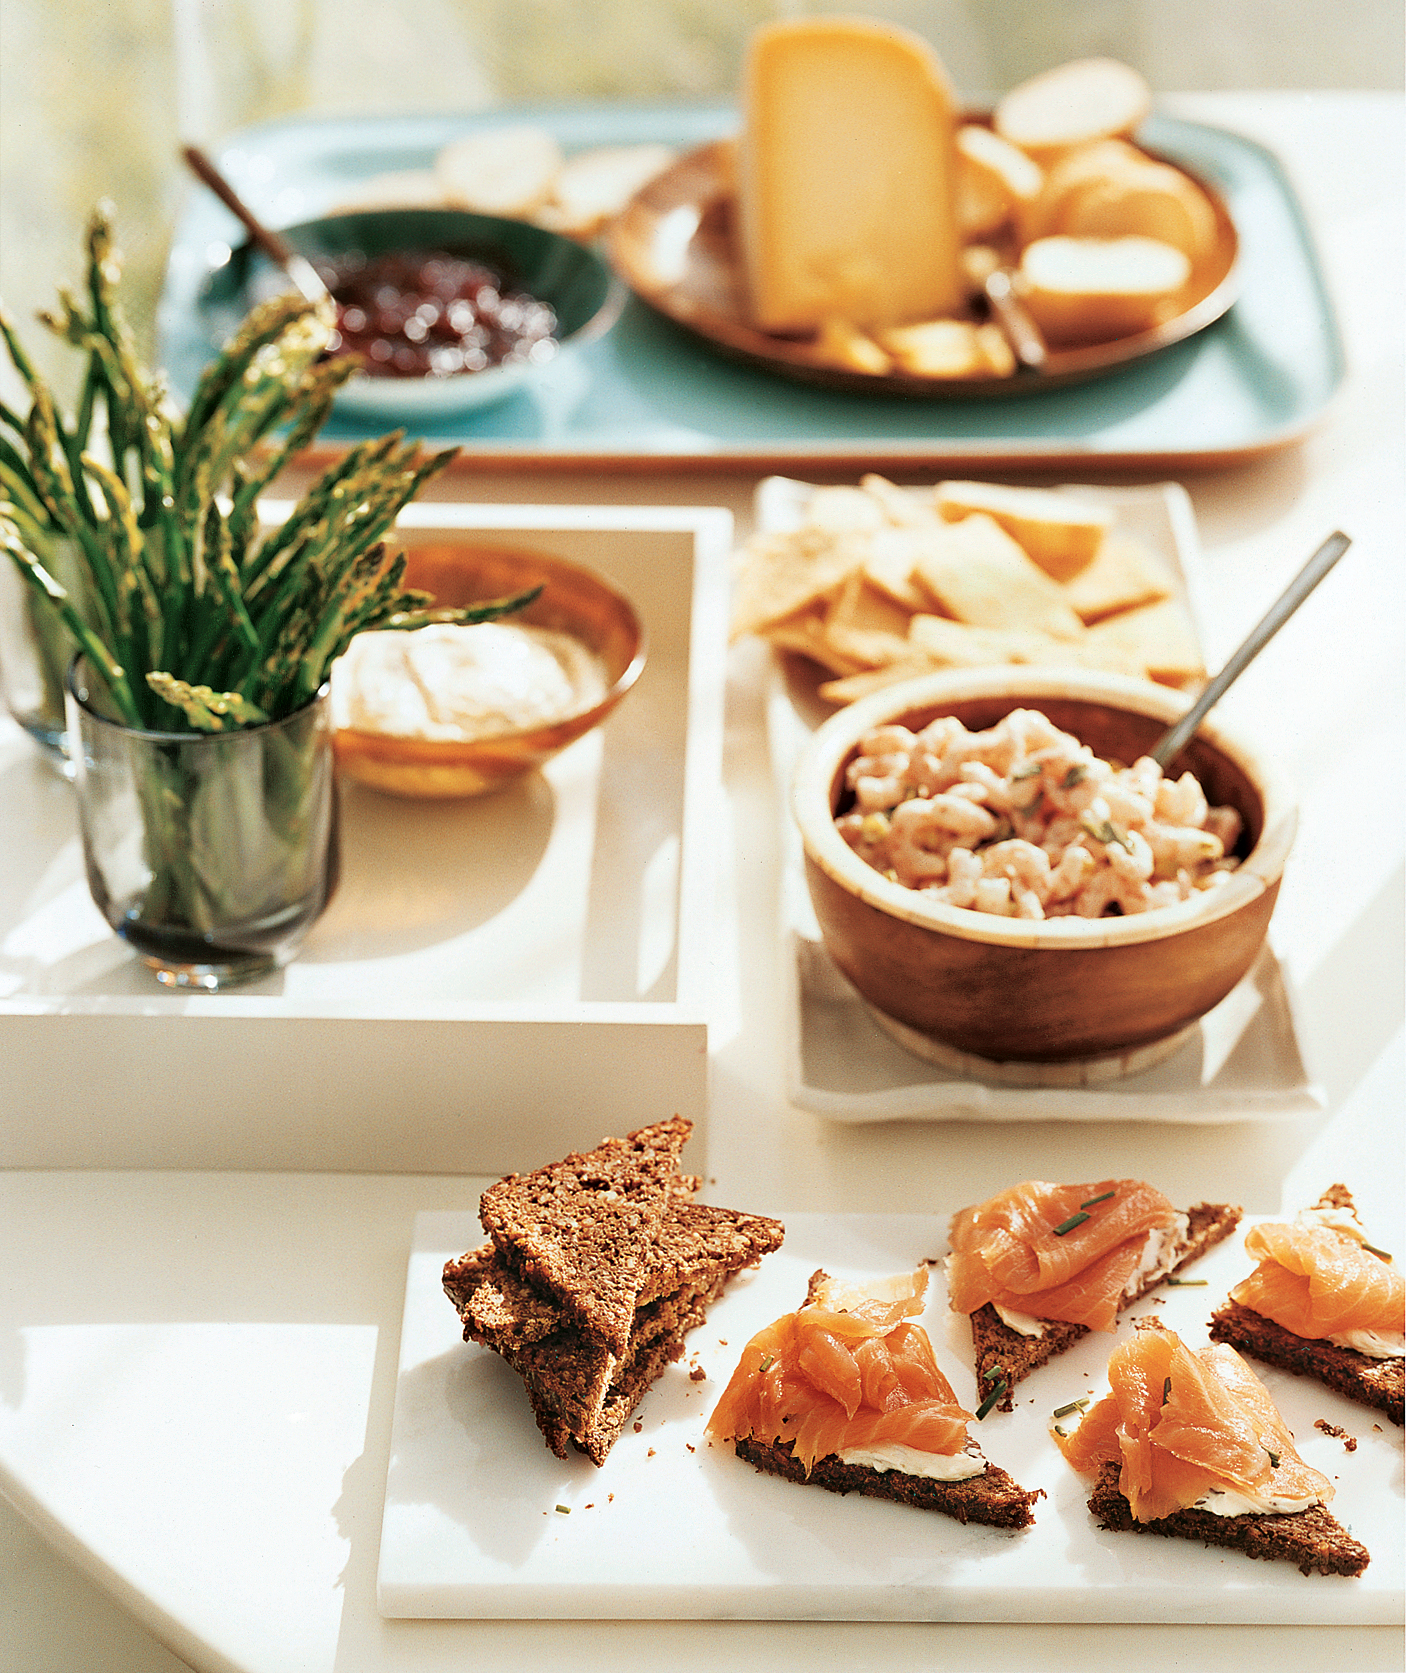 Smoked Salmon Triangles and Herbed Bay Shrimp With Rye Crackers